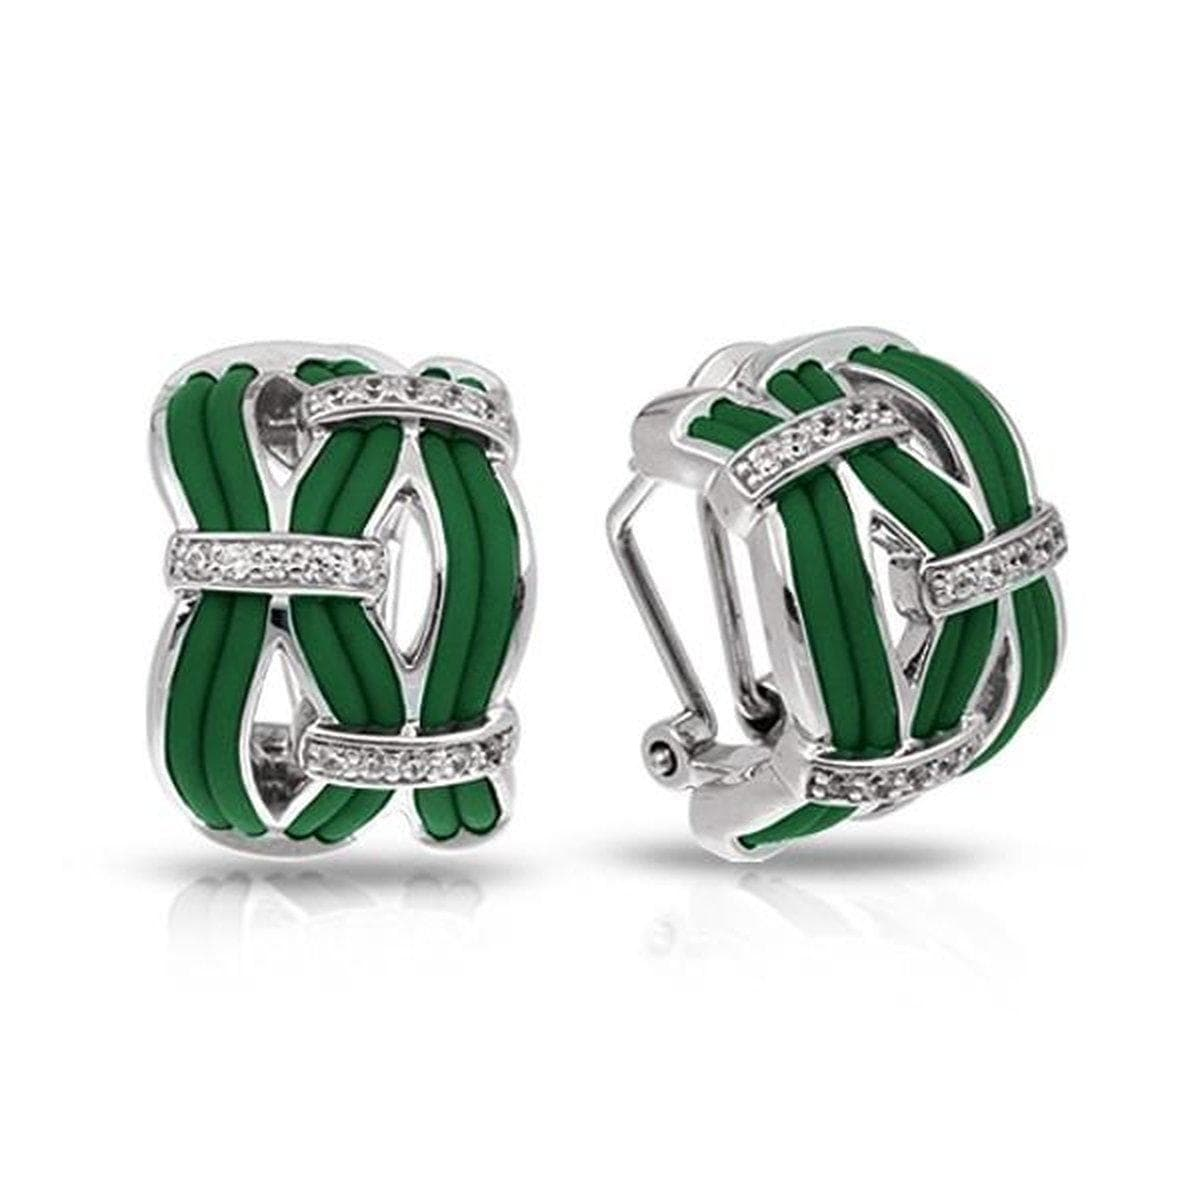 Riviera Emerald Earrings-Belle Etoile-Renee Taylor Gallery